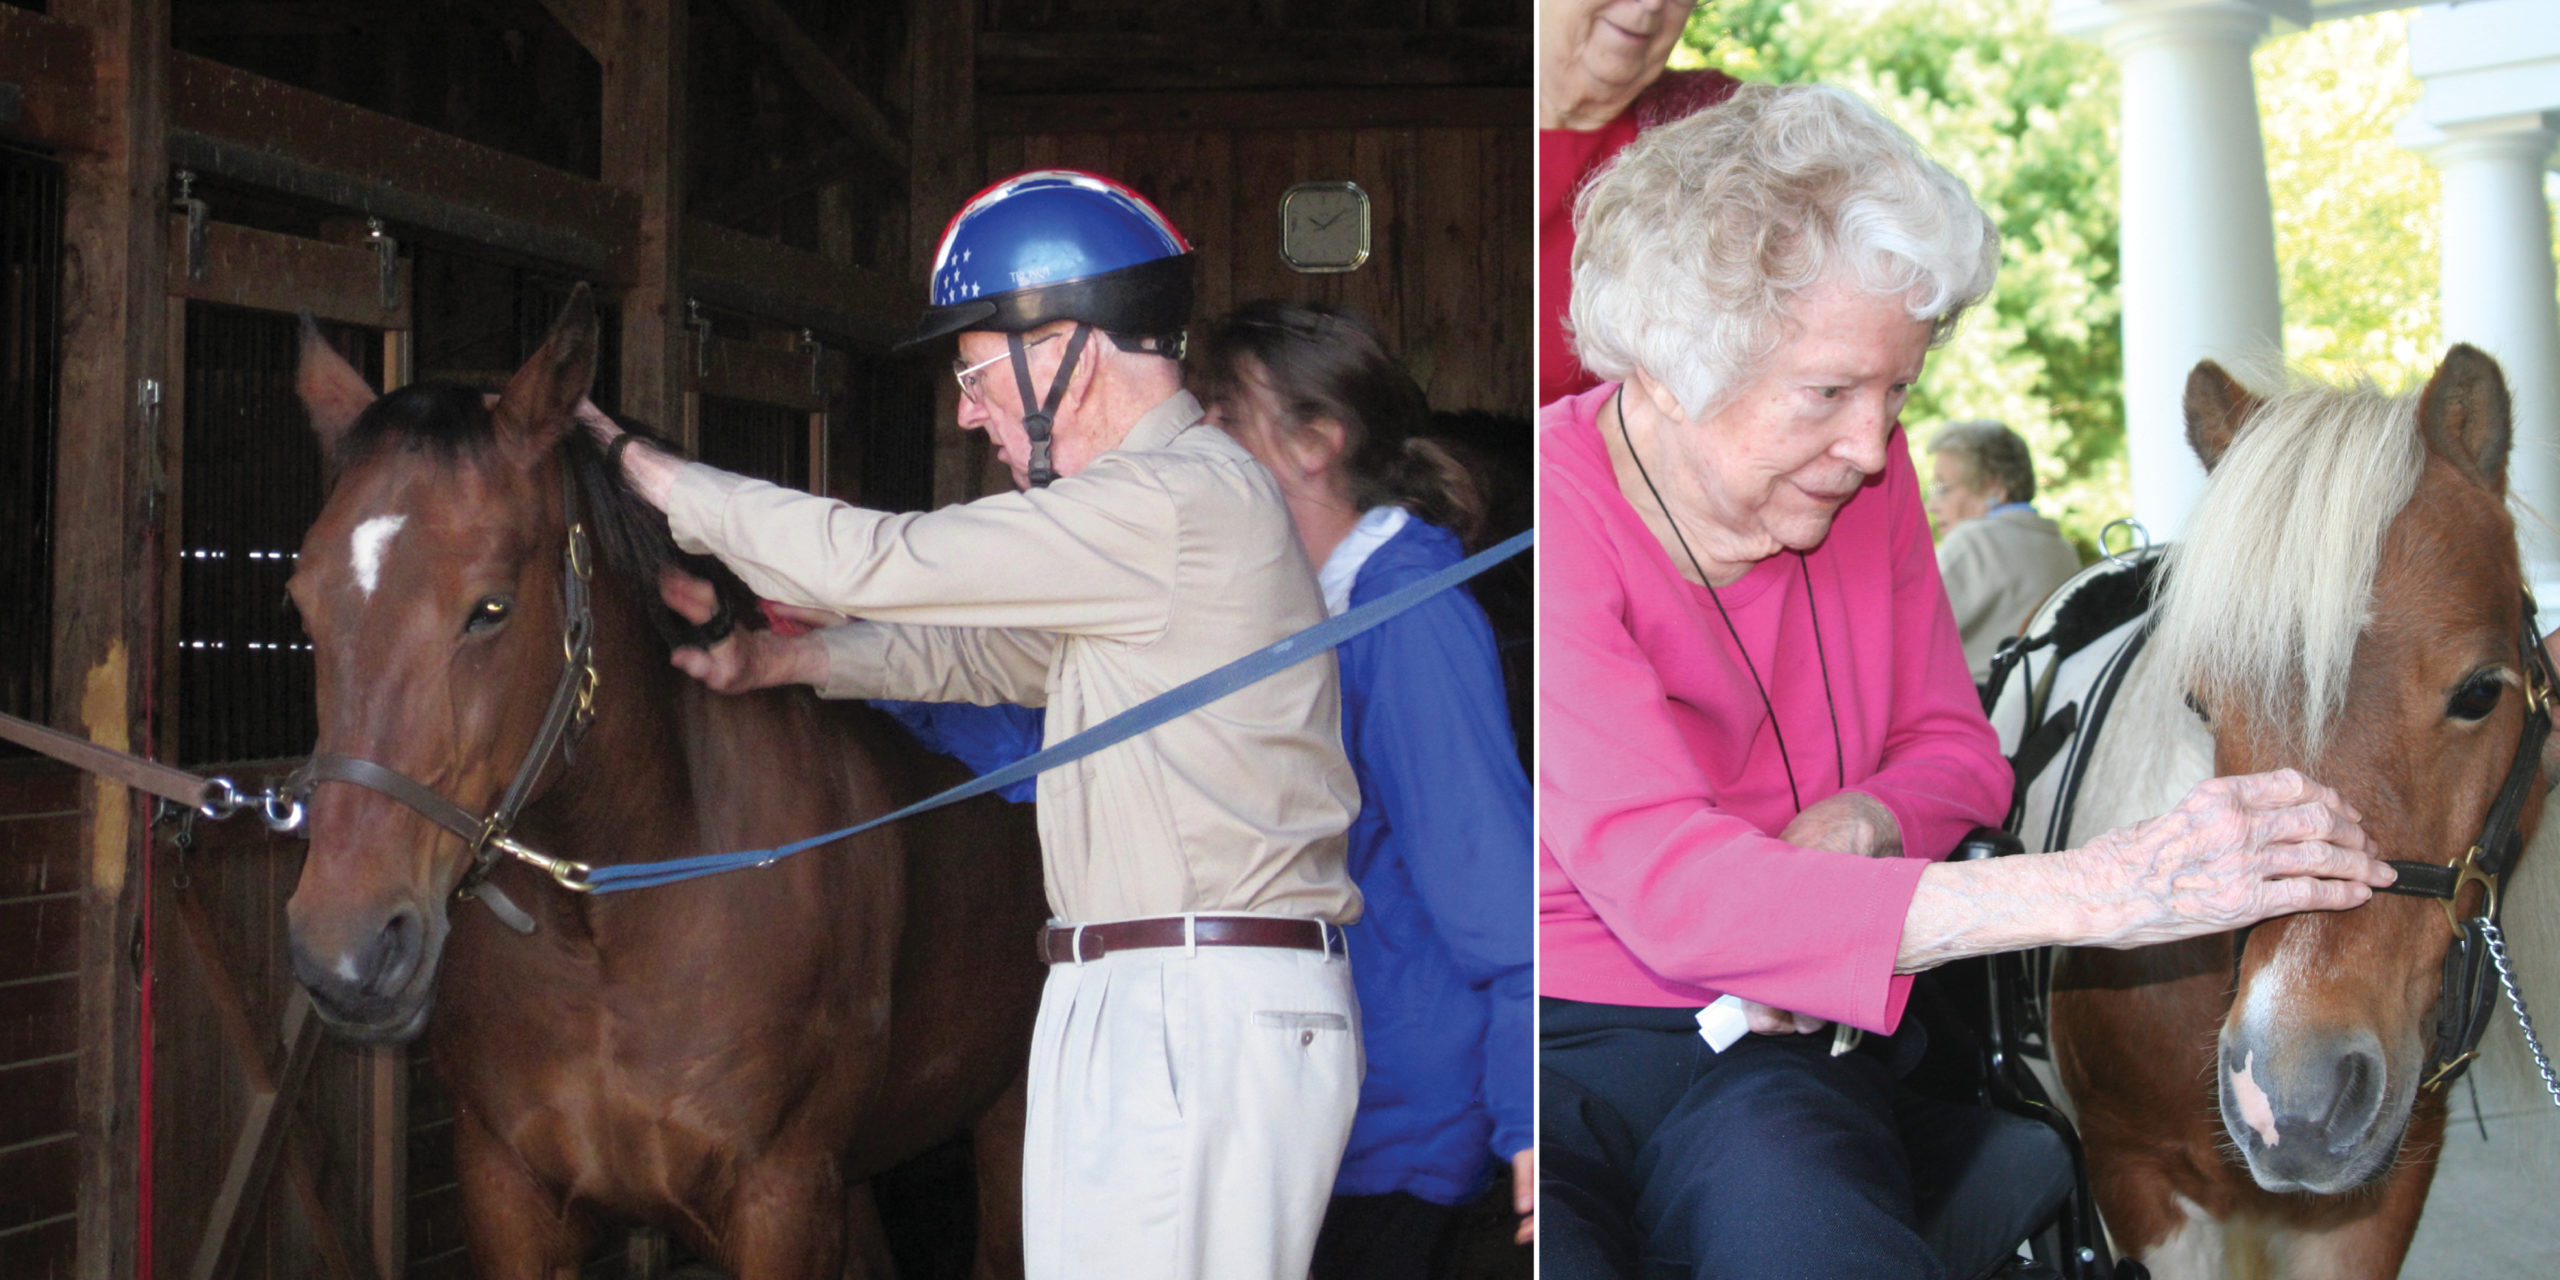 photo of elderly people grooming horses